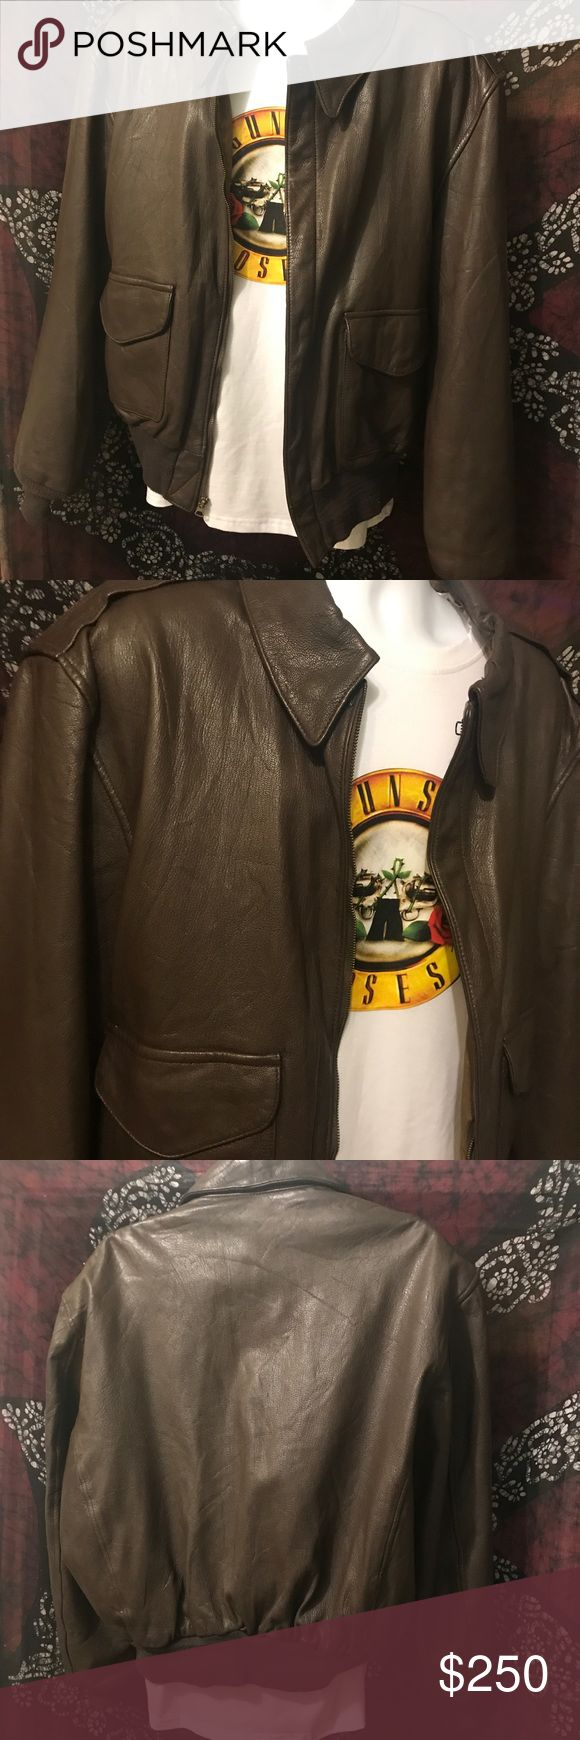 US Air Force Bomber Jacket! From M&L! Complete authentic US Air Force Bomber Jacket, from a vintage shop On the hottest streets of LA!! Great for any motorcycle rider,  very durable leather jacket! Super warm!!!! Jackets & Coats Bomber & Varsity